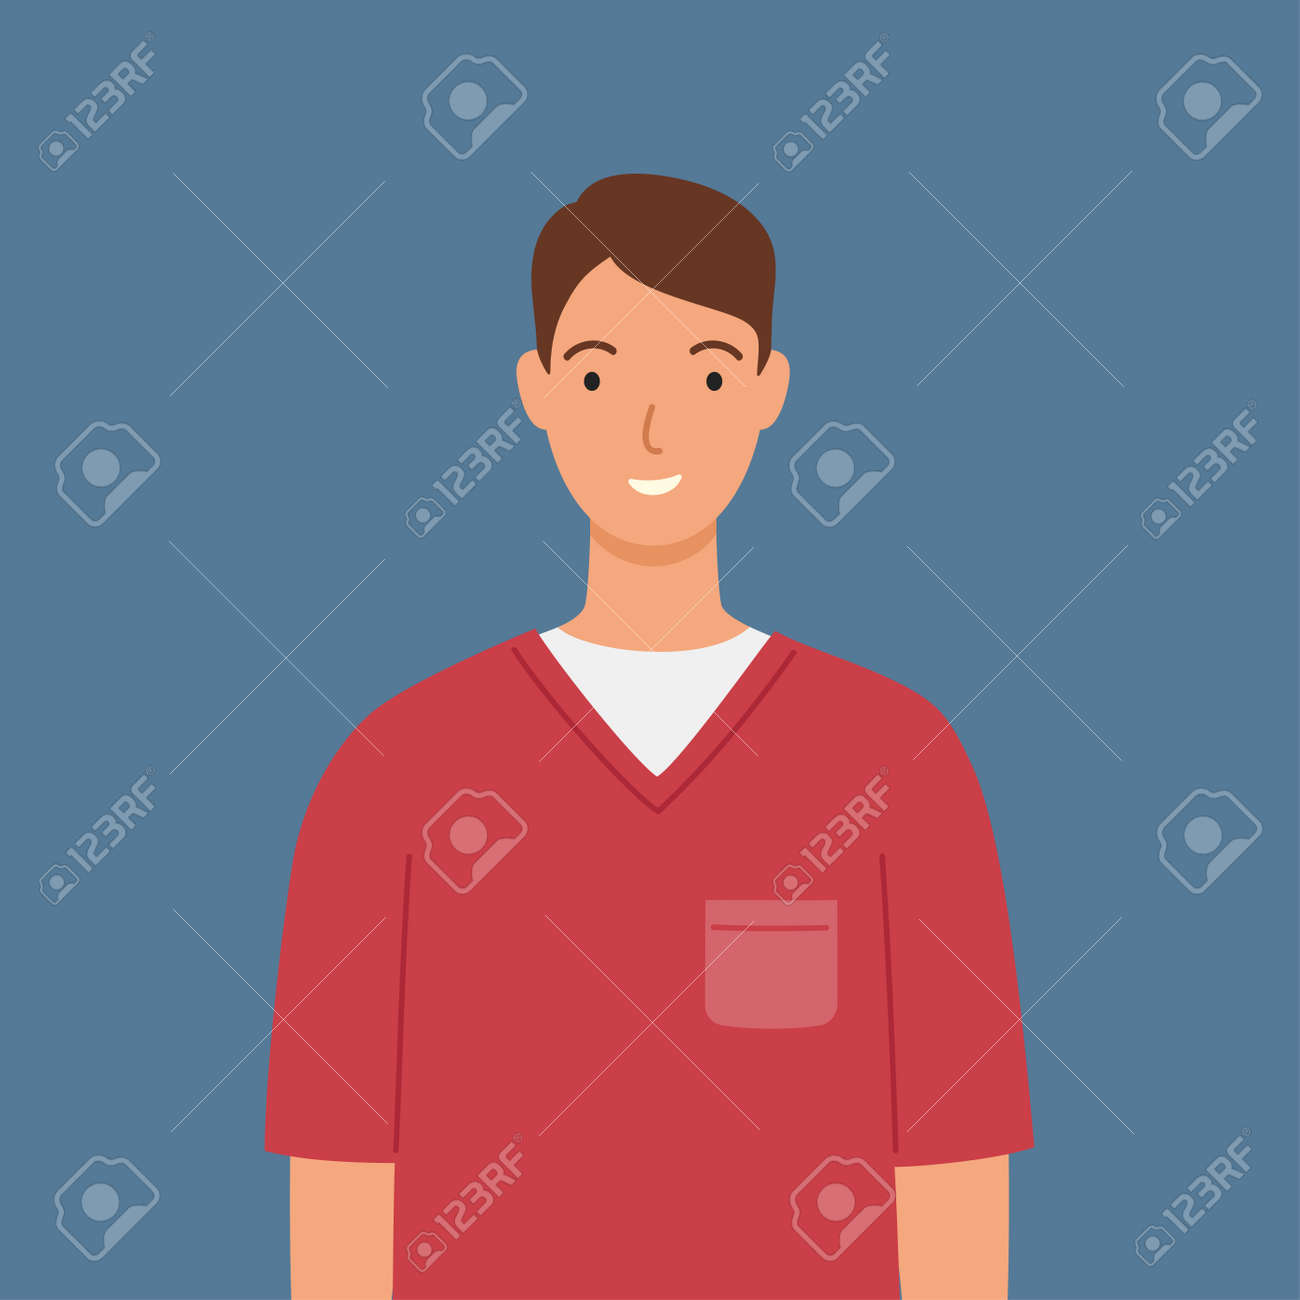 Male nurse in red medical robe. Vector illustration in a flat style. - 168597164